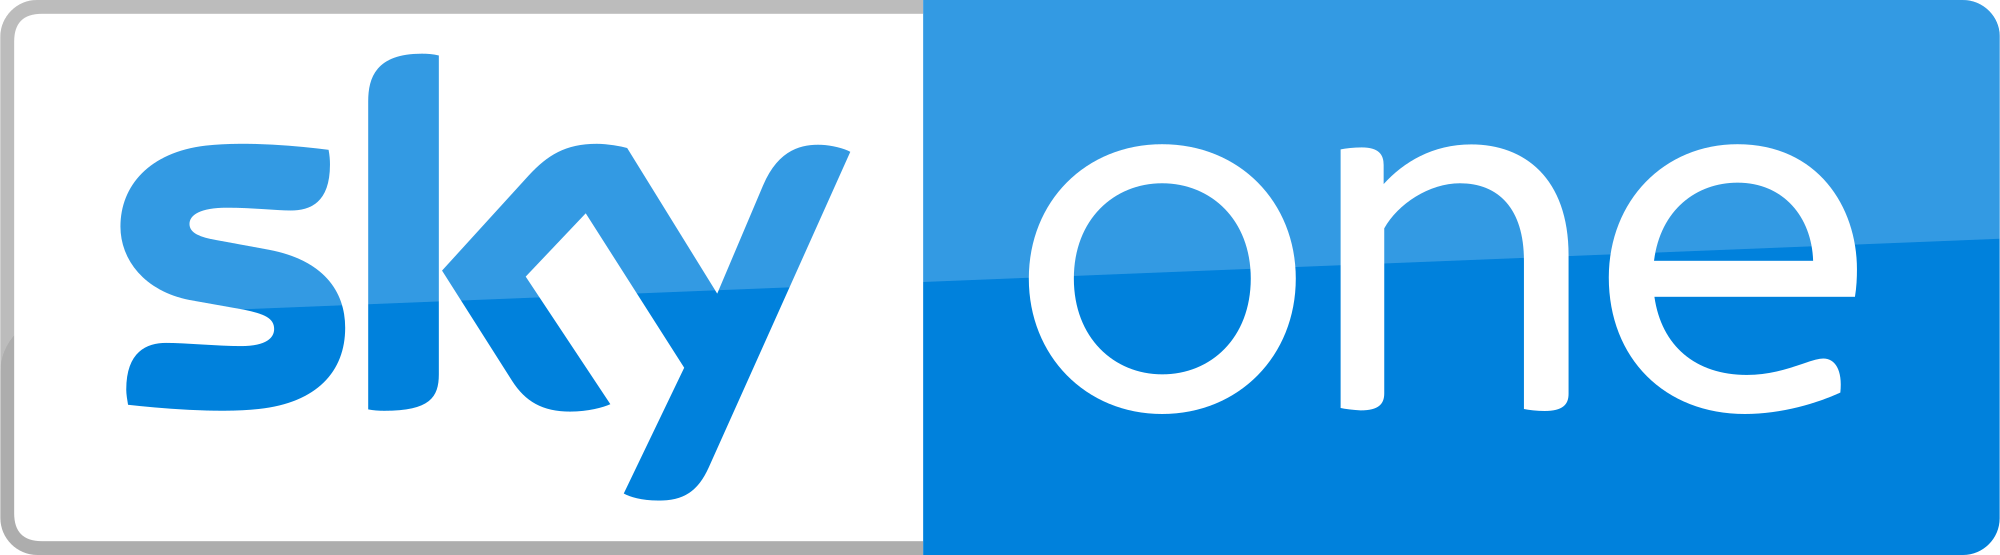 sky one logo.png